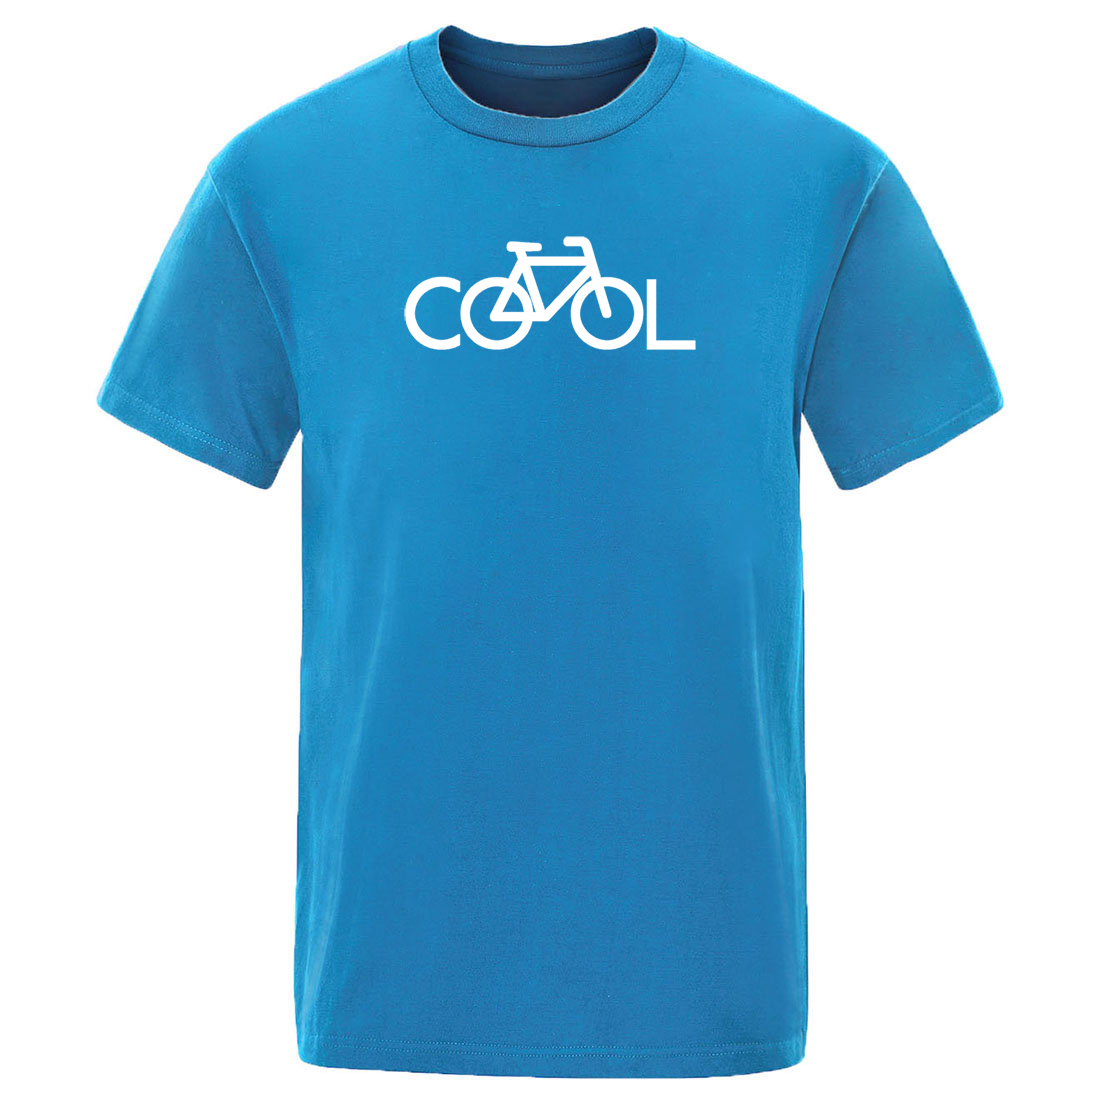 Bike Vintage Simple Print 2020 T Shirt Summer Hot Sale Handsome Casual Tshirts Solid Color Men Crew Neck Streetwear Short Sleeve